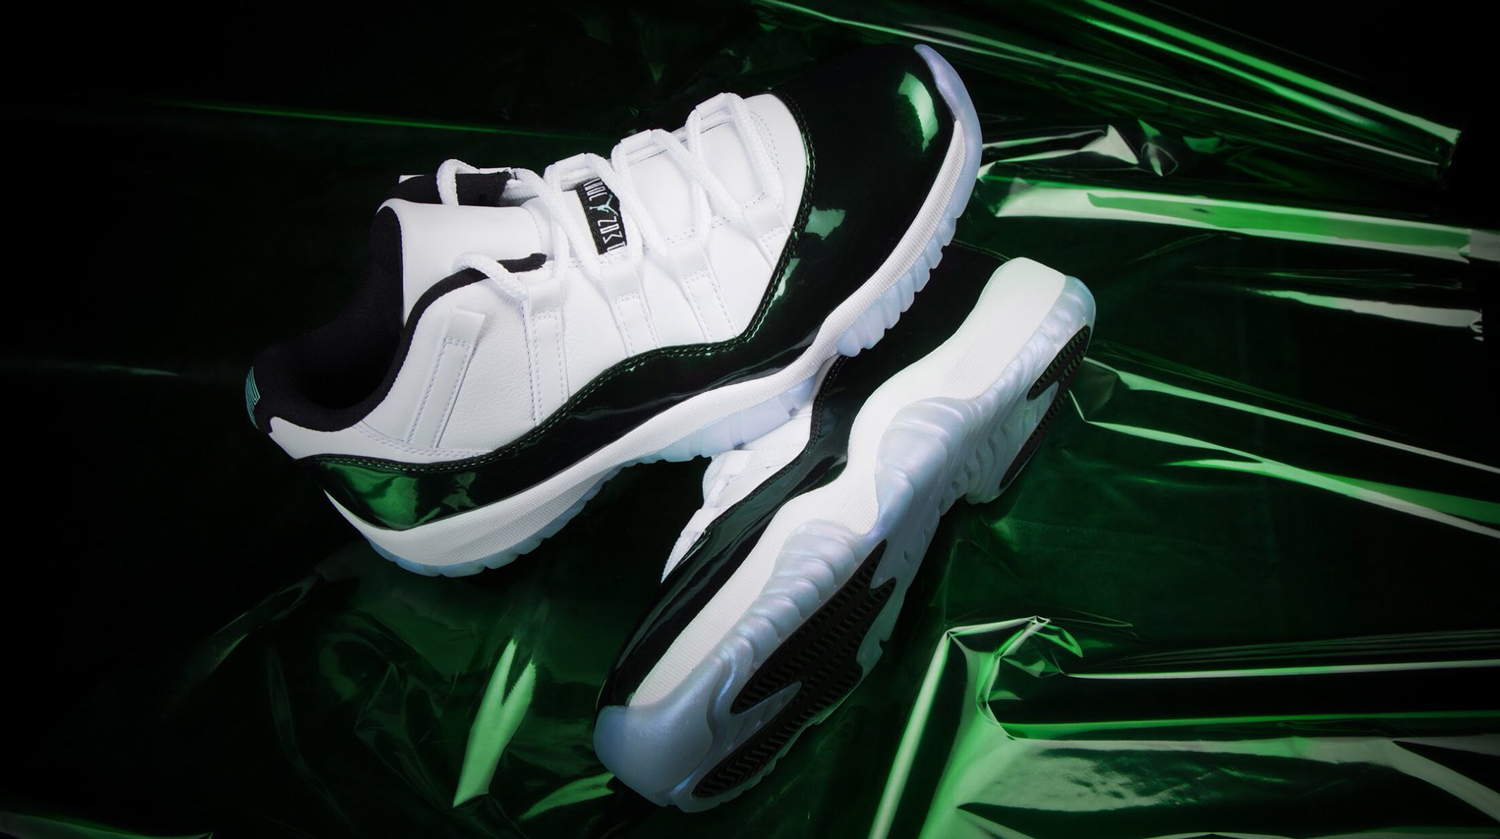 hats-to-match-jordan-11-low-emerald